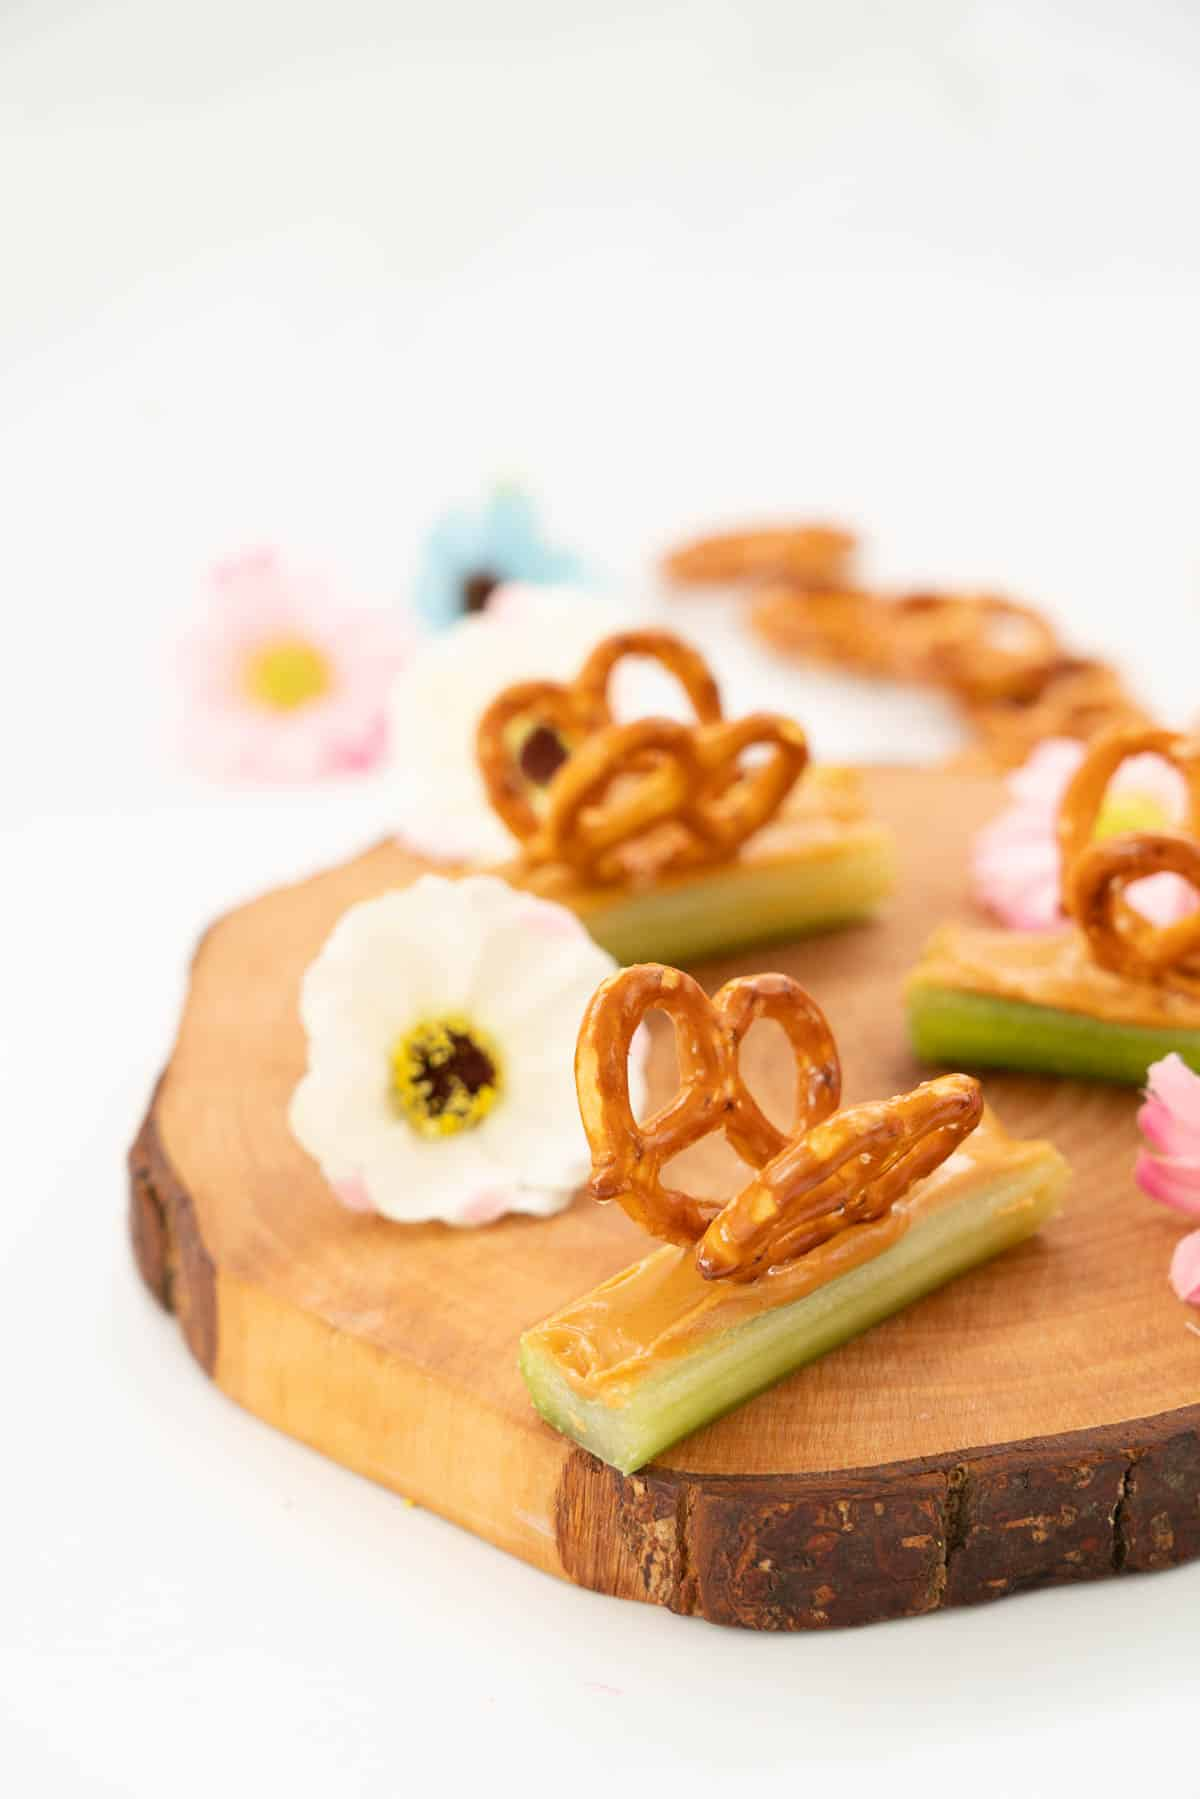 Celery sticks filled with peanut butter decorated with pretzels to form wings, making a butterfly snack., on a wooden board scattered with small flowers.